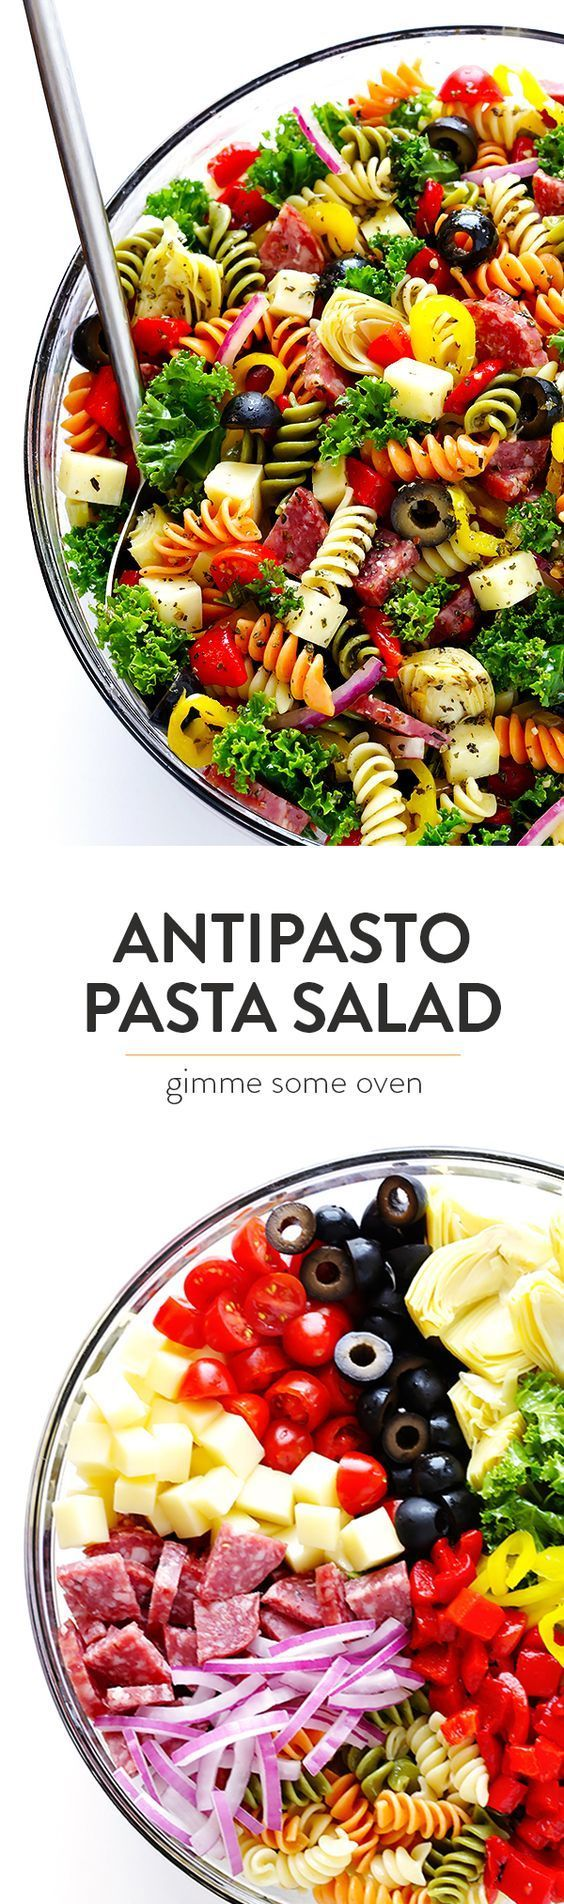 This Rainbow Antipasto Pasta Salad is the perfect way to use up leftover antipasto ingredients! Plus, it's easy to make, tossed with a zesty Italian herb vinaigrette, and absolutely delicious! | http://gimmesomeoven.com